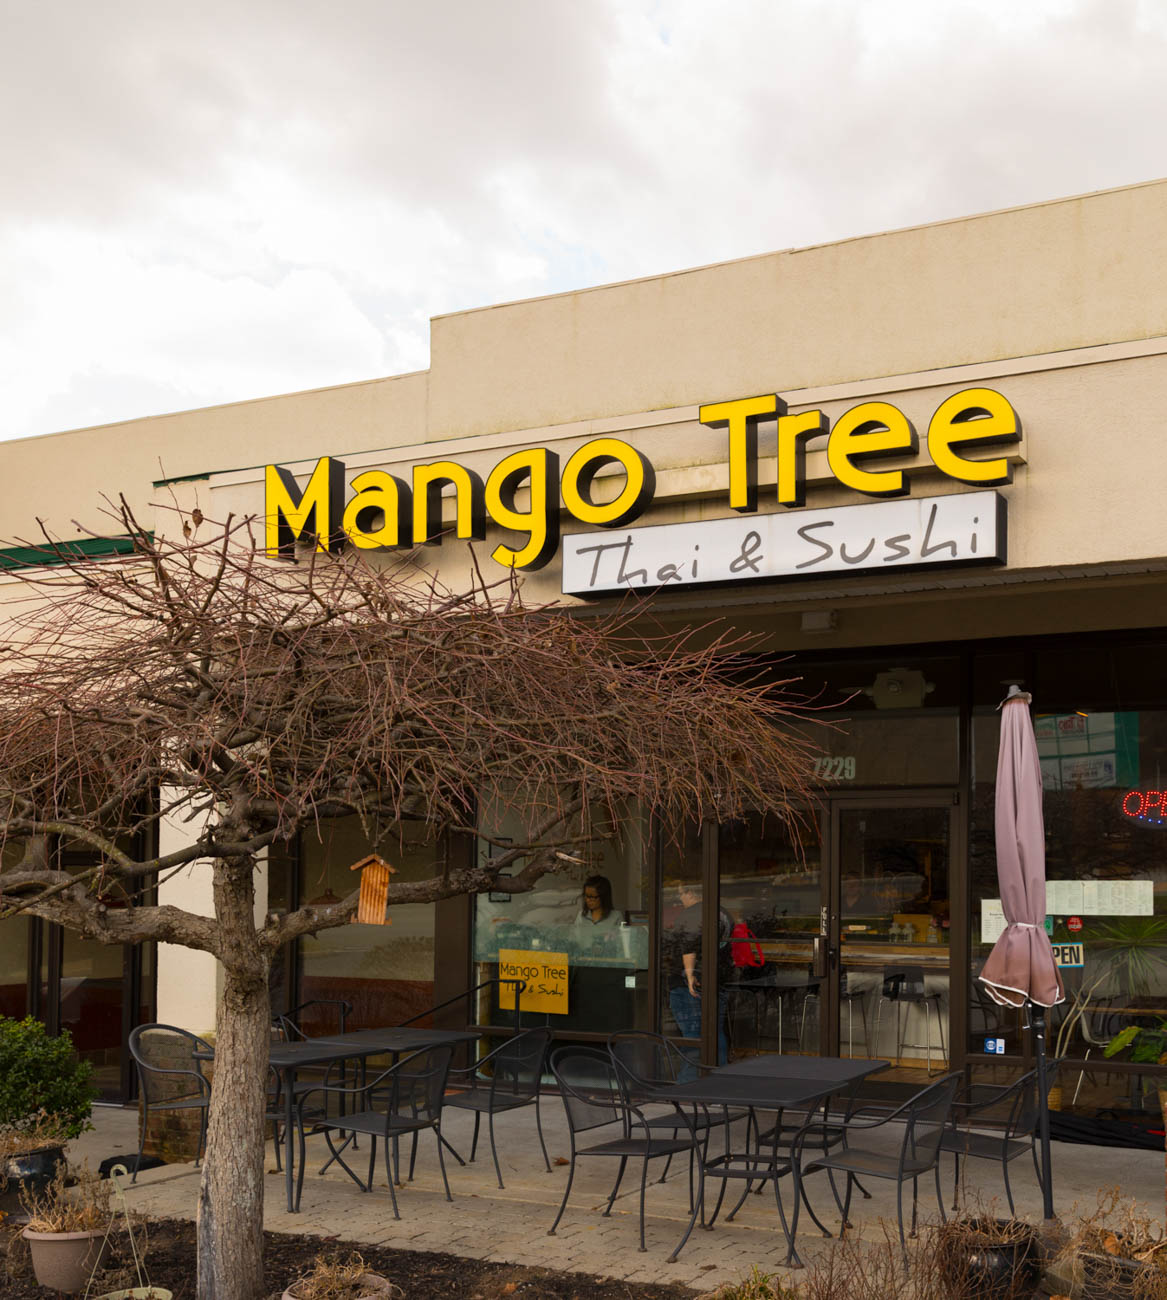 Mango Tree Thai & Sushi has been bringing enticing Asian fusion to Mariemont for over six years. Co-owners and married couple, Nick & Nui Kongdach, take pride in their restaurant's distinct flavors, offering everything from authentic Thai street food, to classic Japanese dishes like sushi. ADDRESS: 7229 Wooster Pike (45227) / Image: Marlene Rounds // Published: 1.17.19